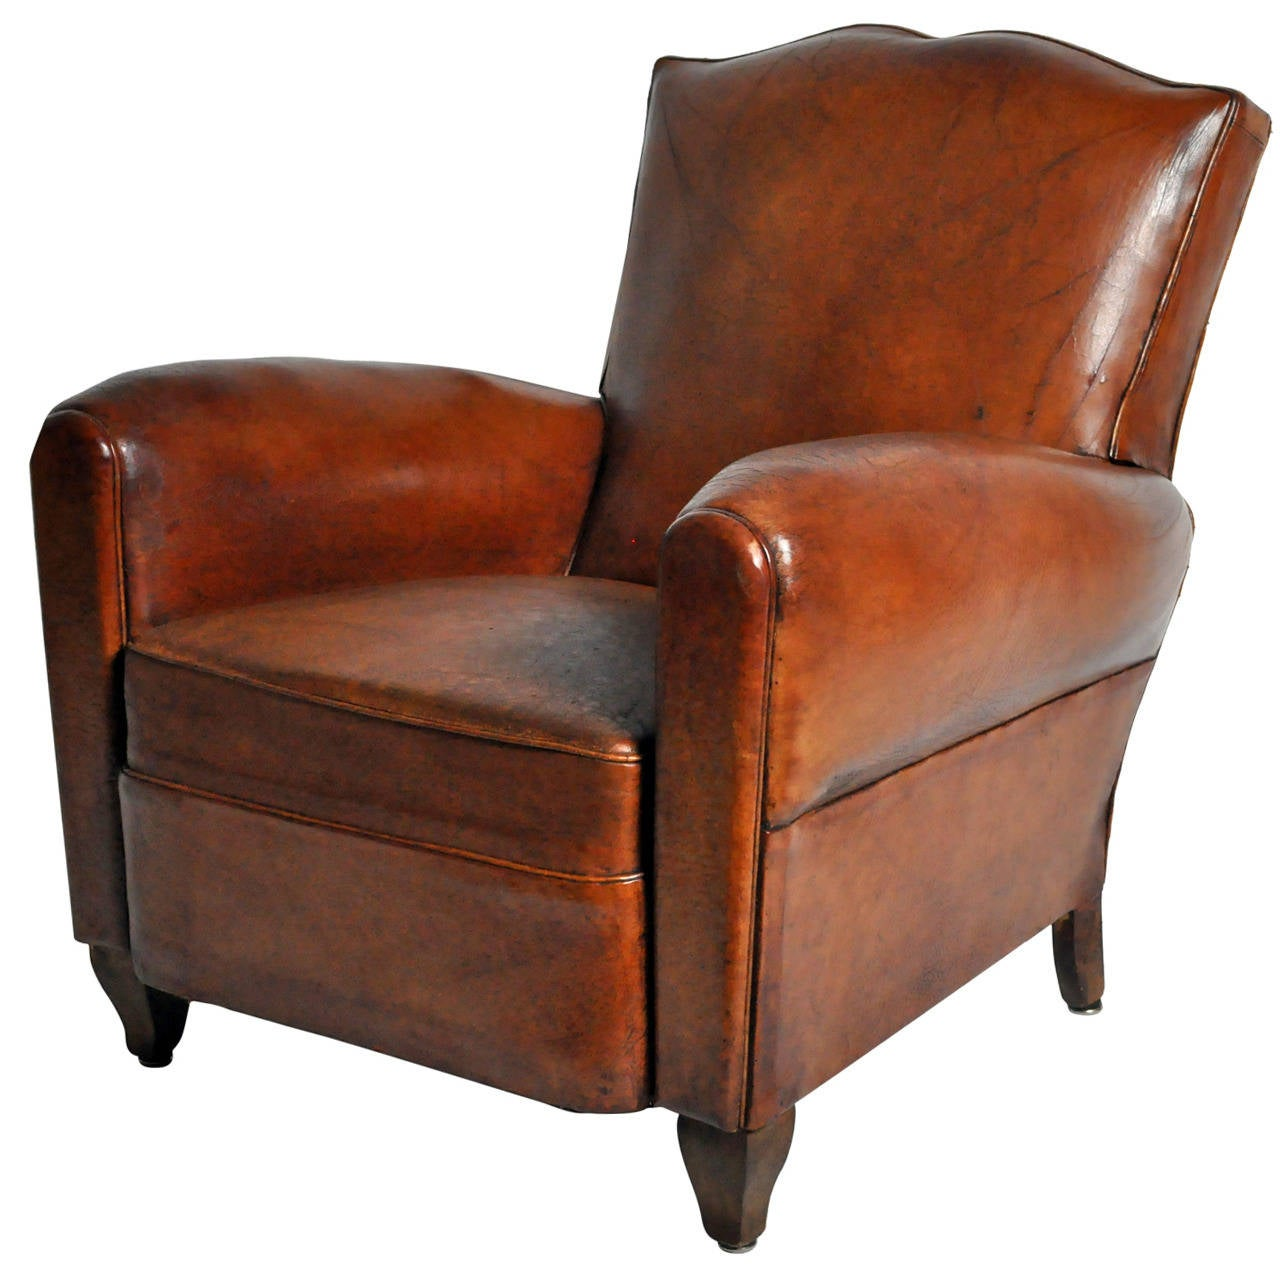 leather club chairs for sale situate chair company art deco at 1stdibs